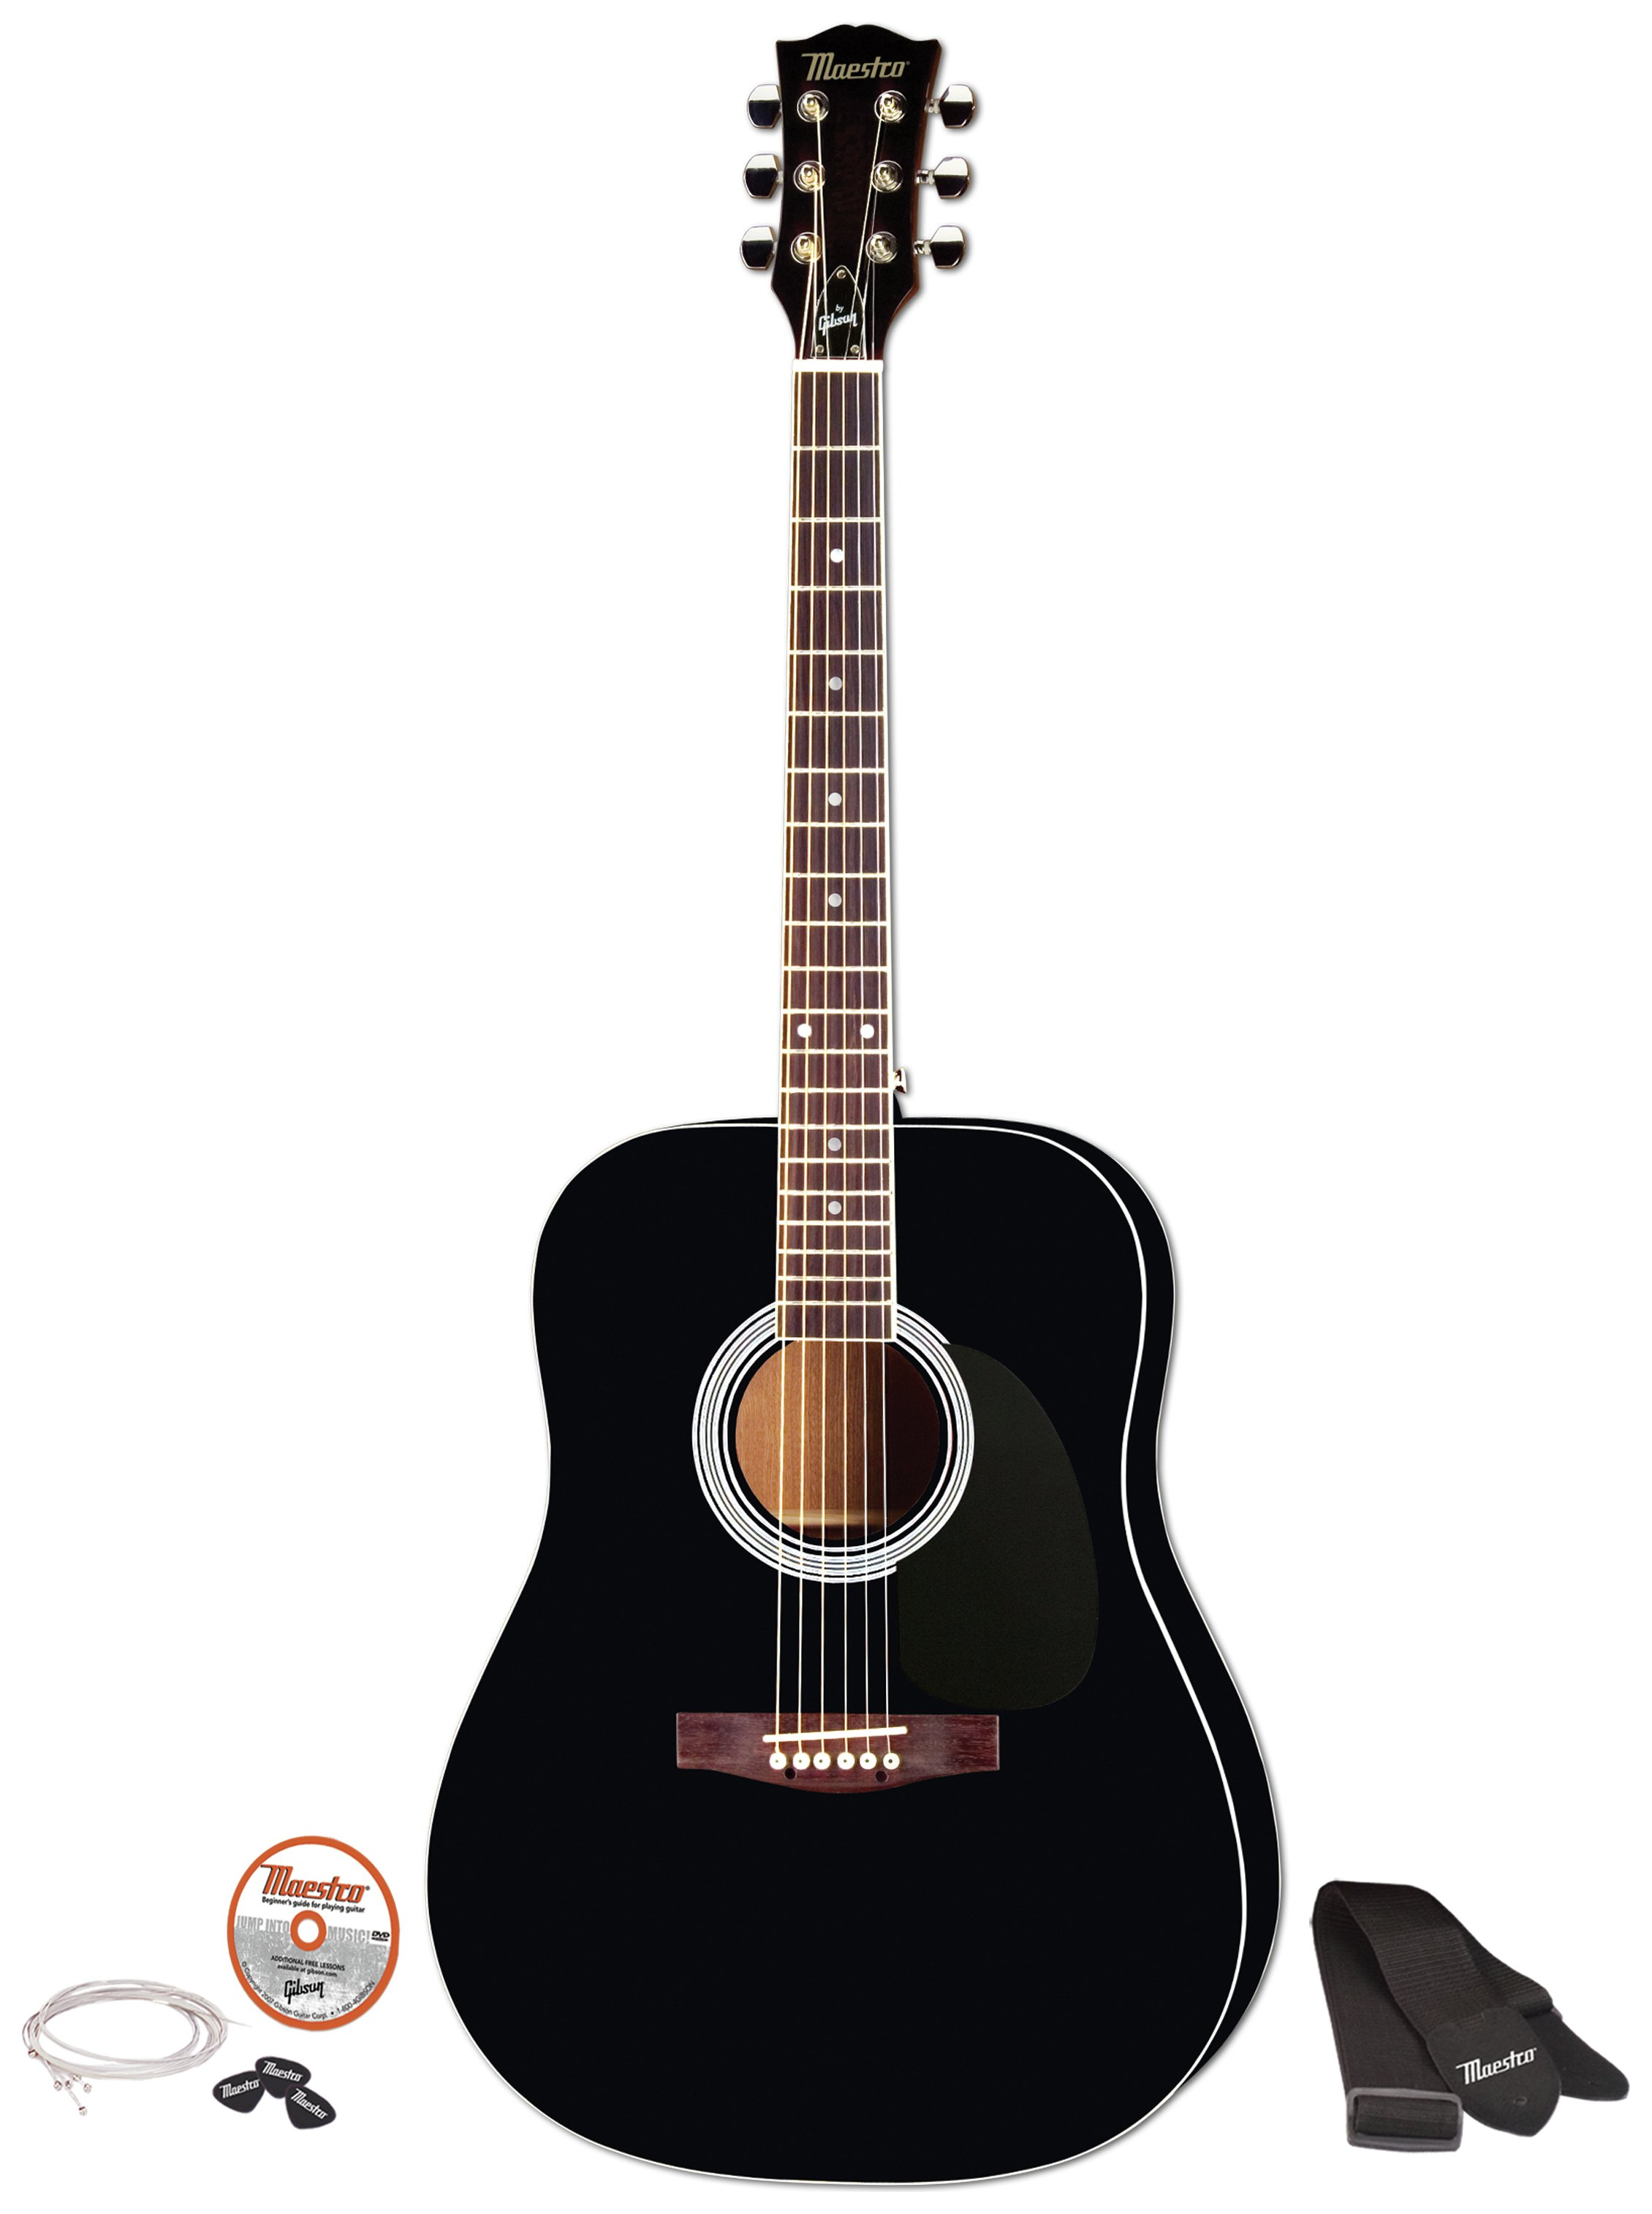 Image of Maestro by Gibson Full Size Acoustic Guitar - Black